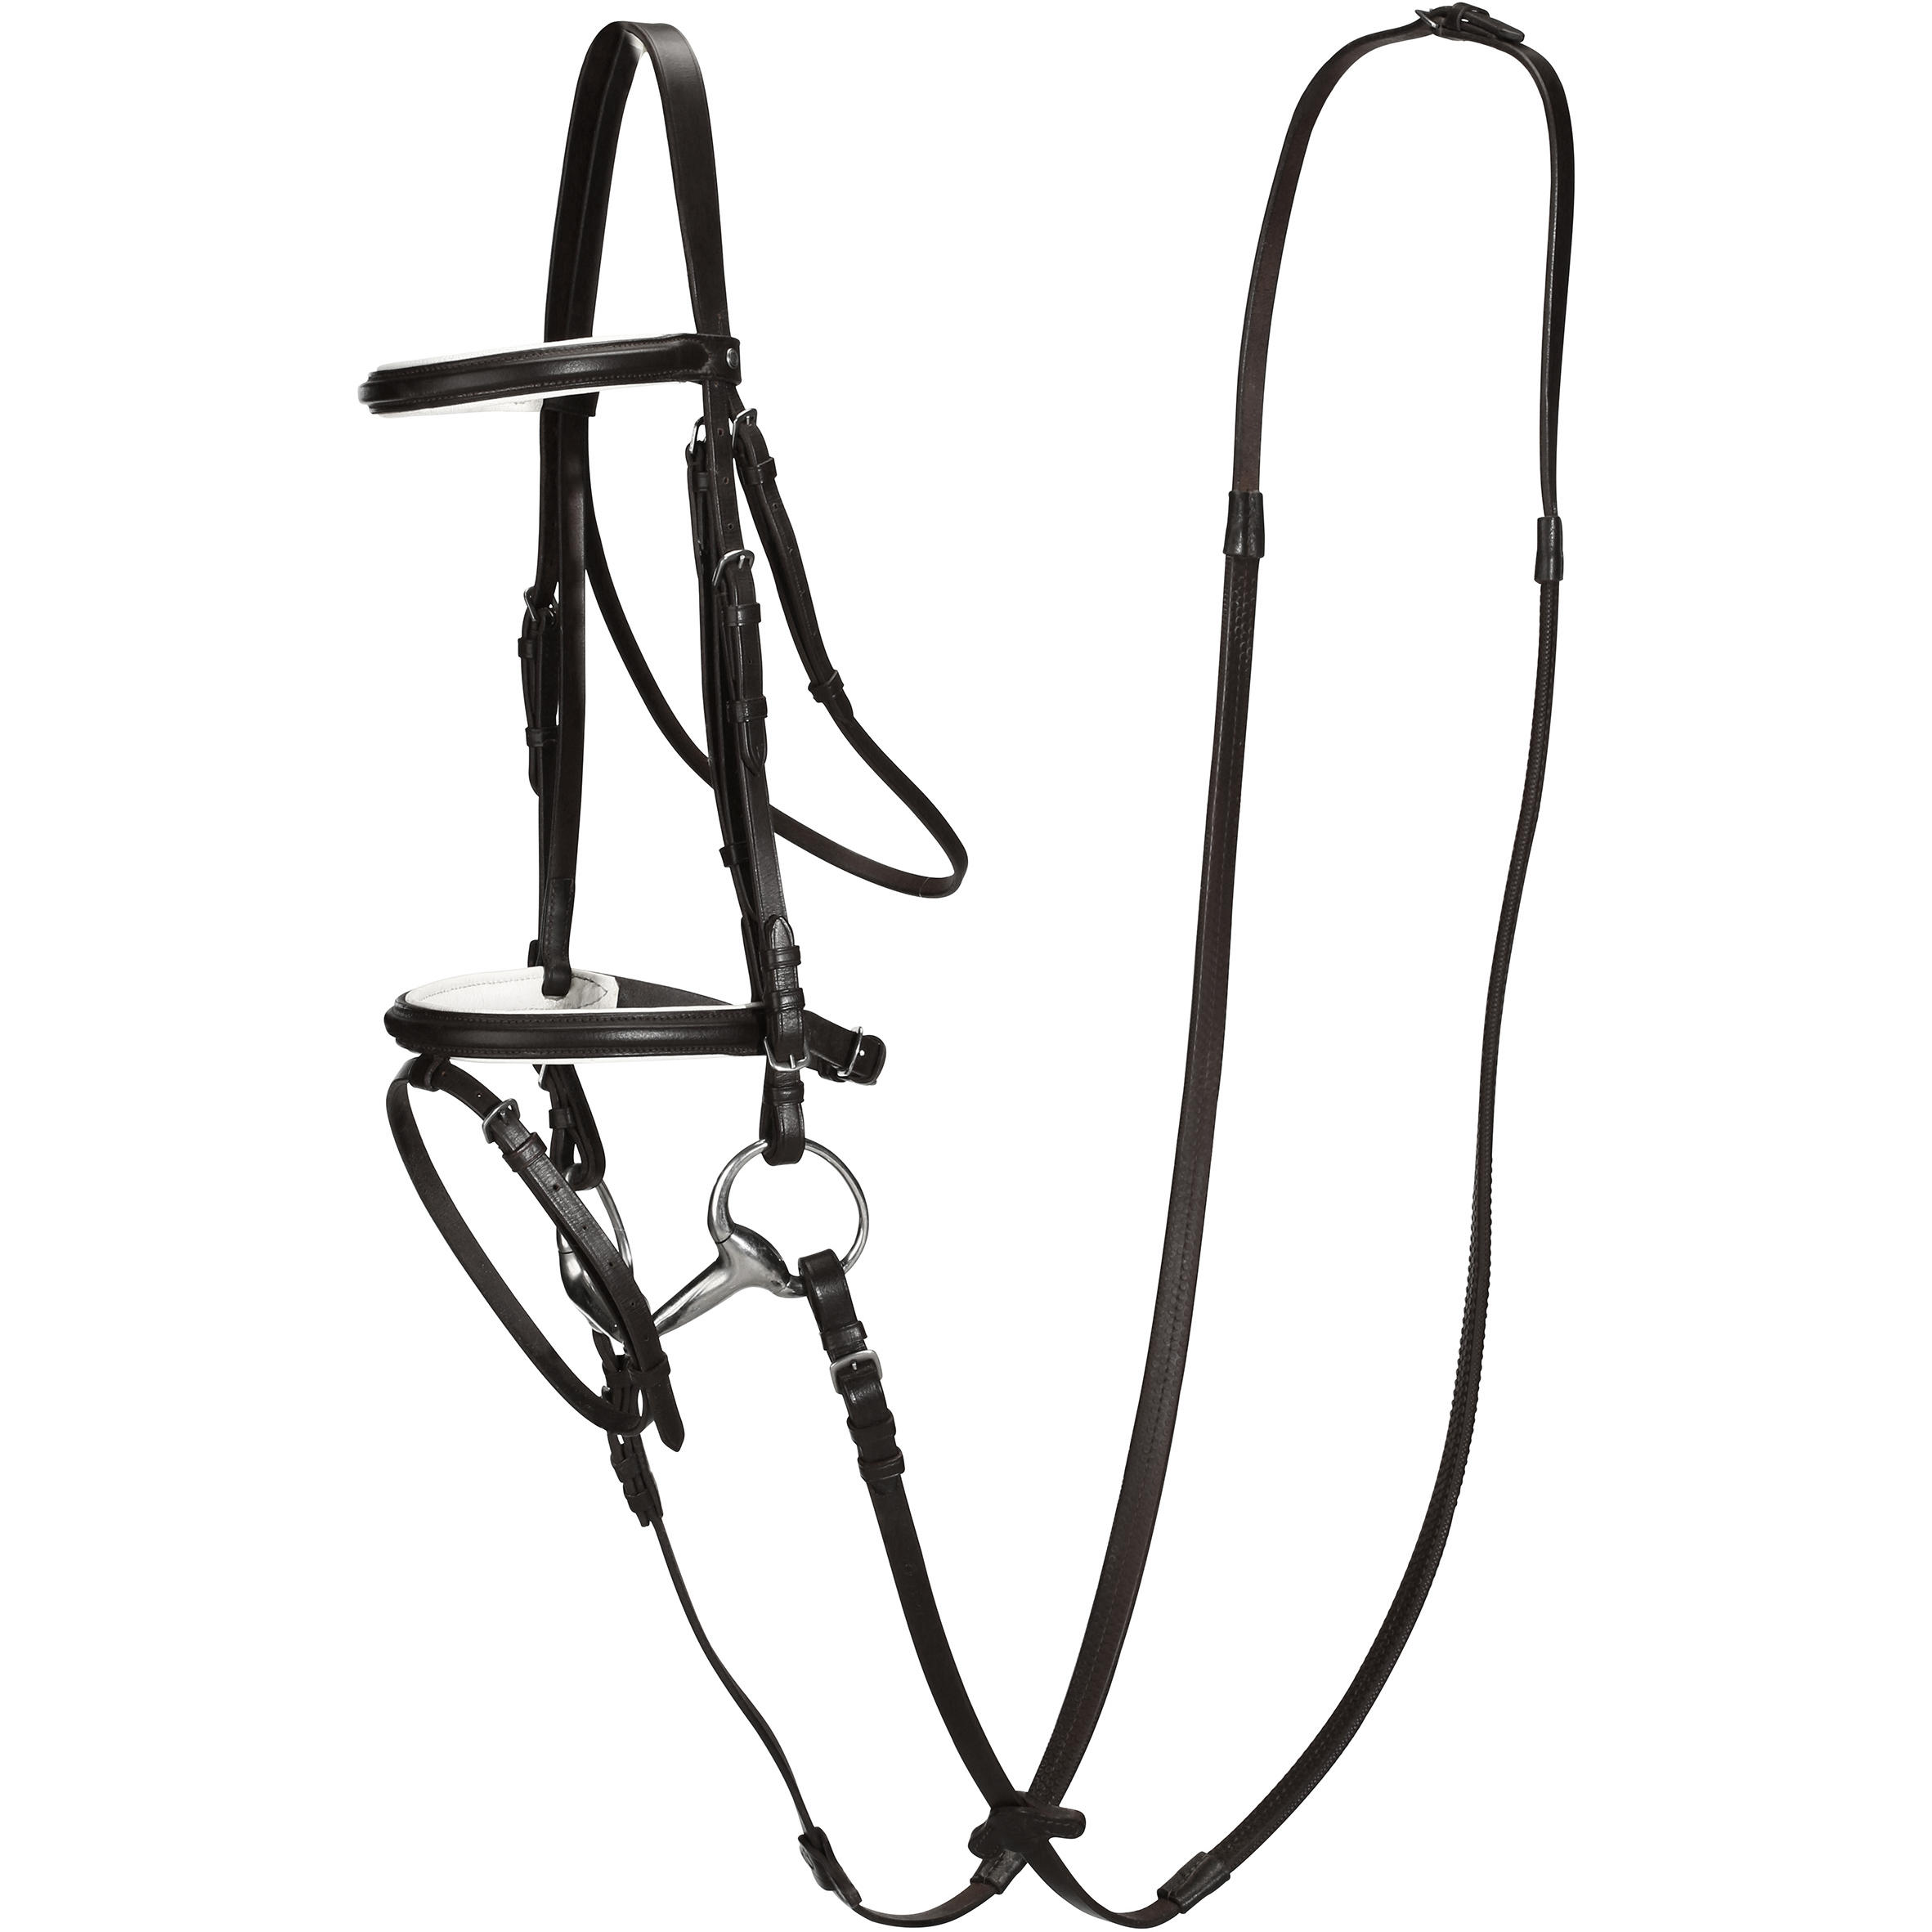 Essen Horseback Riding Bridle And Reins Set Horse And Pony Size